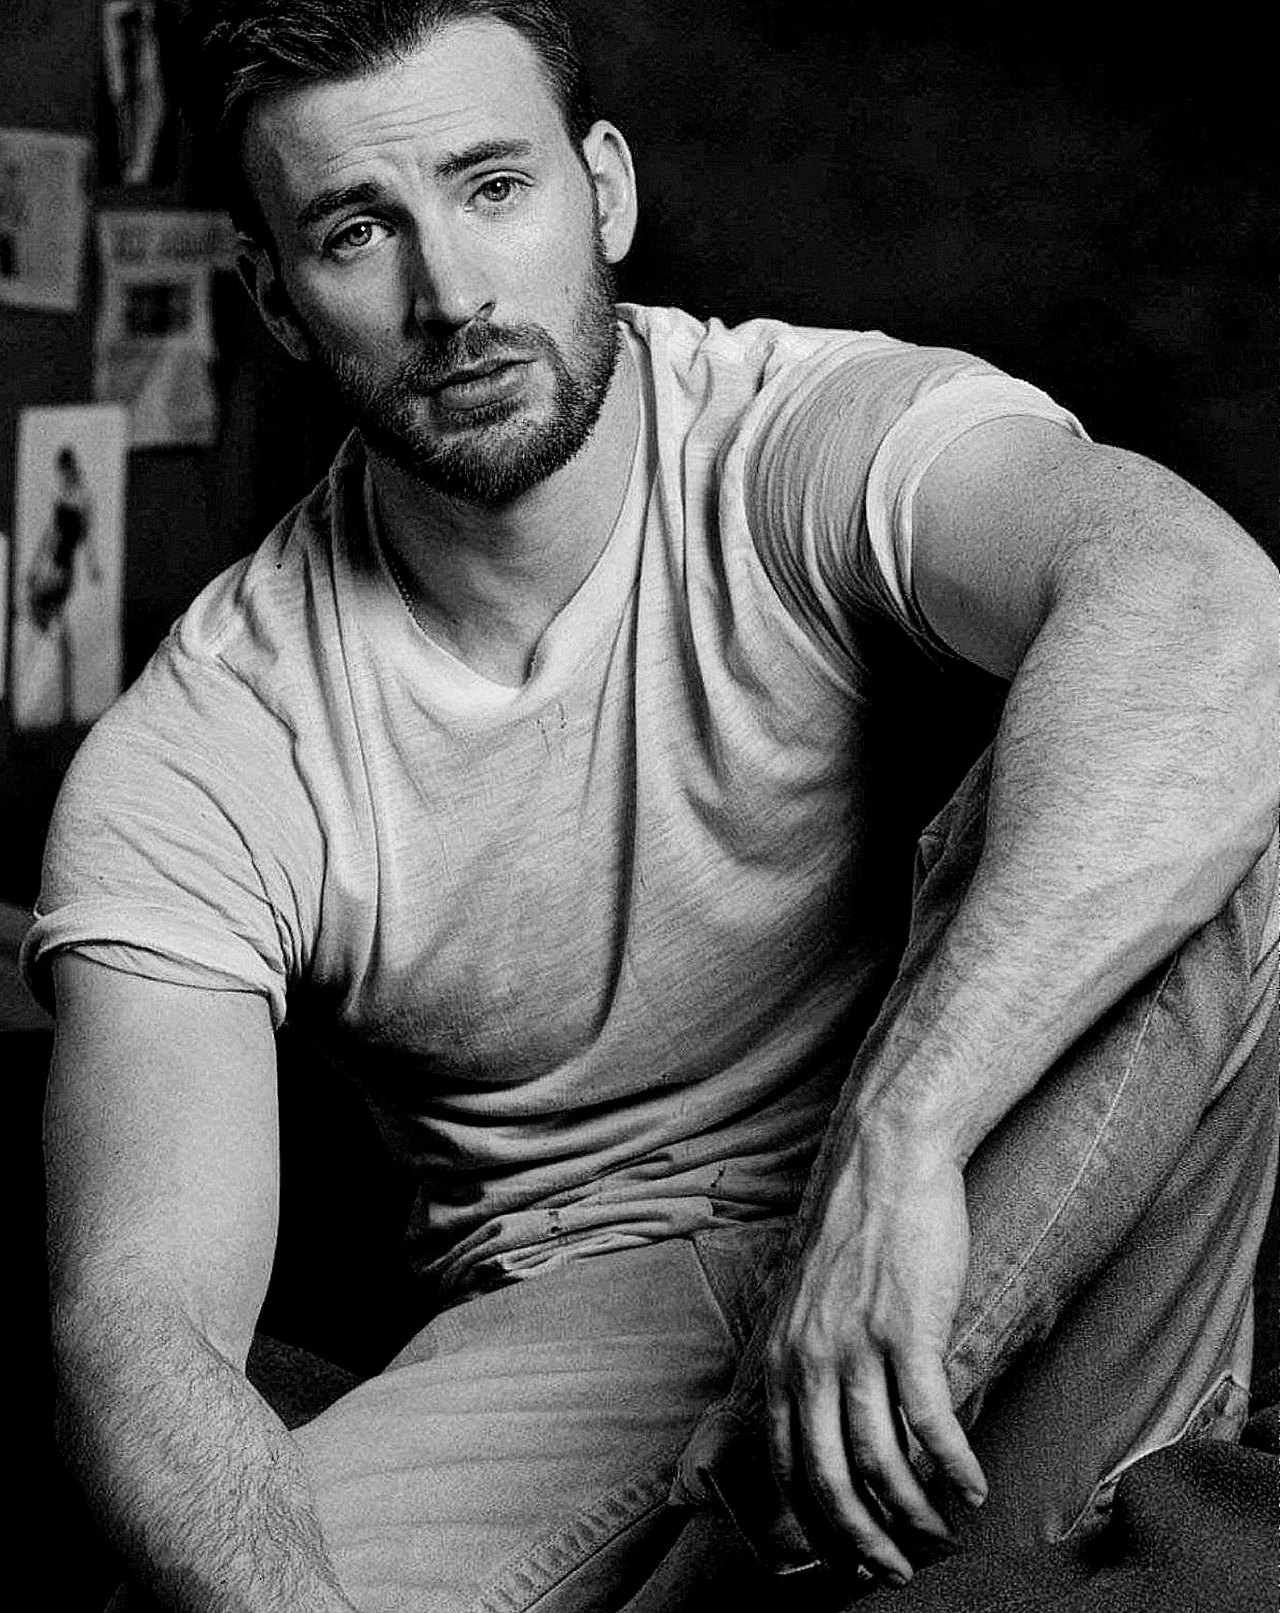 Daily Chris Evans Chris evans tumblr, Chris evans